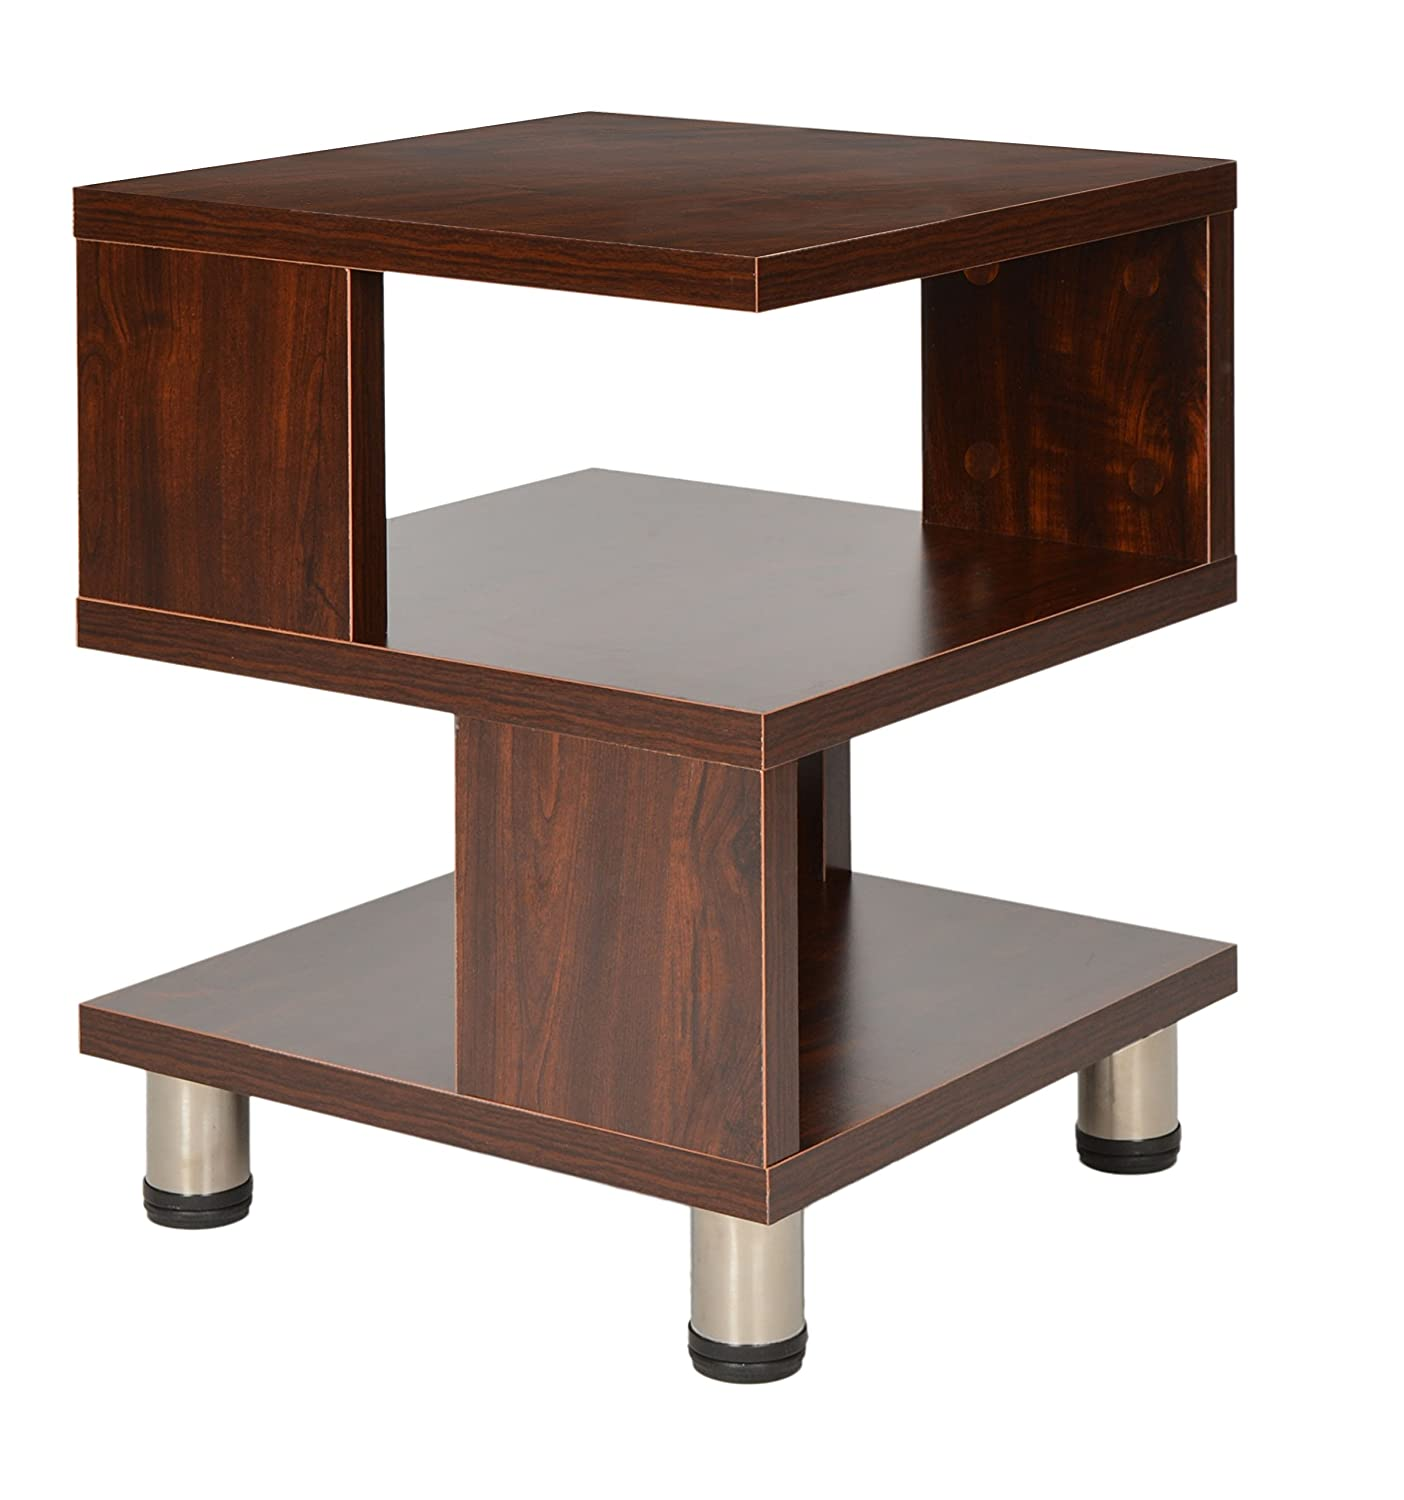 ts-ideen Fancy Design Side Coffee Couch Lounge Phone Low Table Wood ...